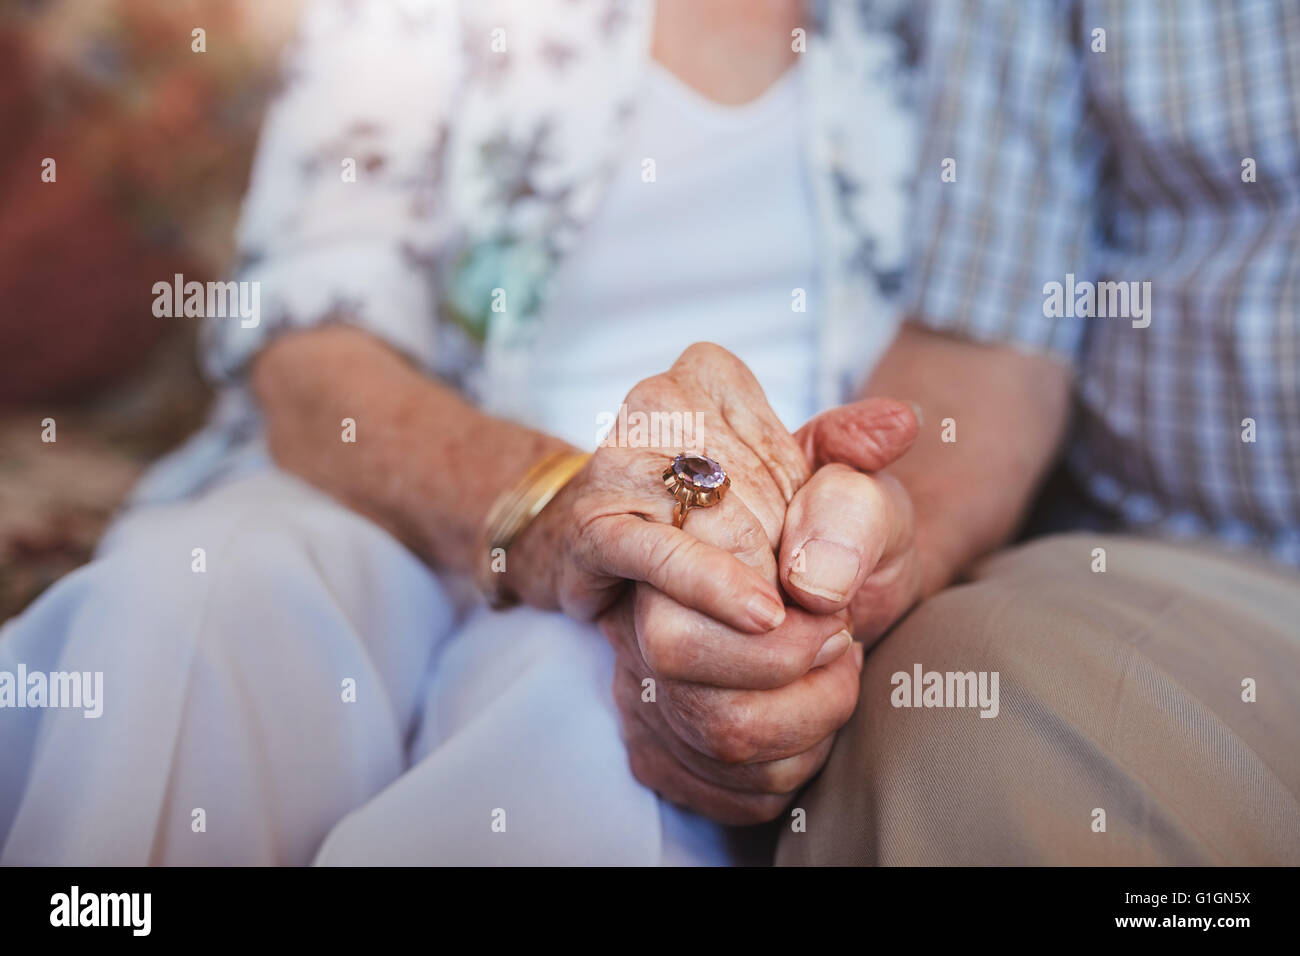 Cropped shot of elderly couple holding hands while sitting together at home. Focus on hands. - Stock Image